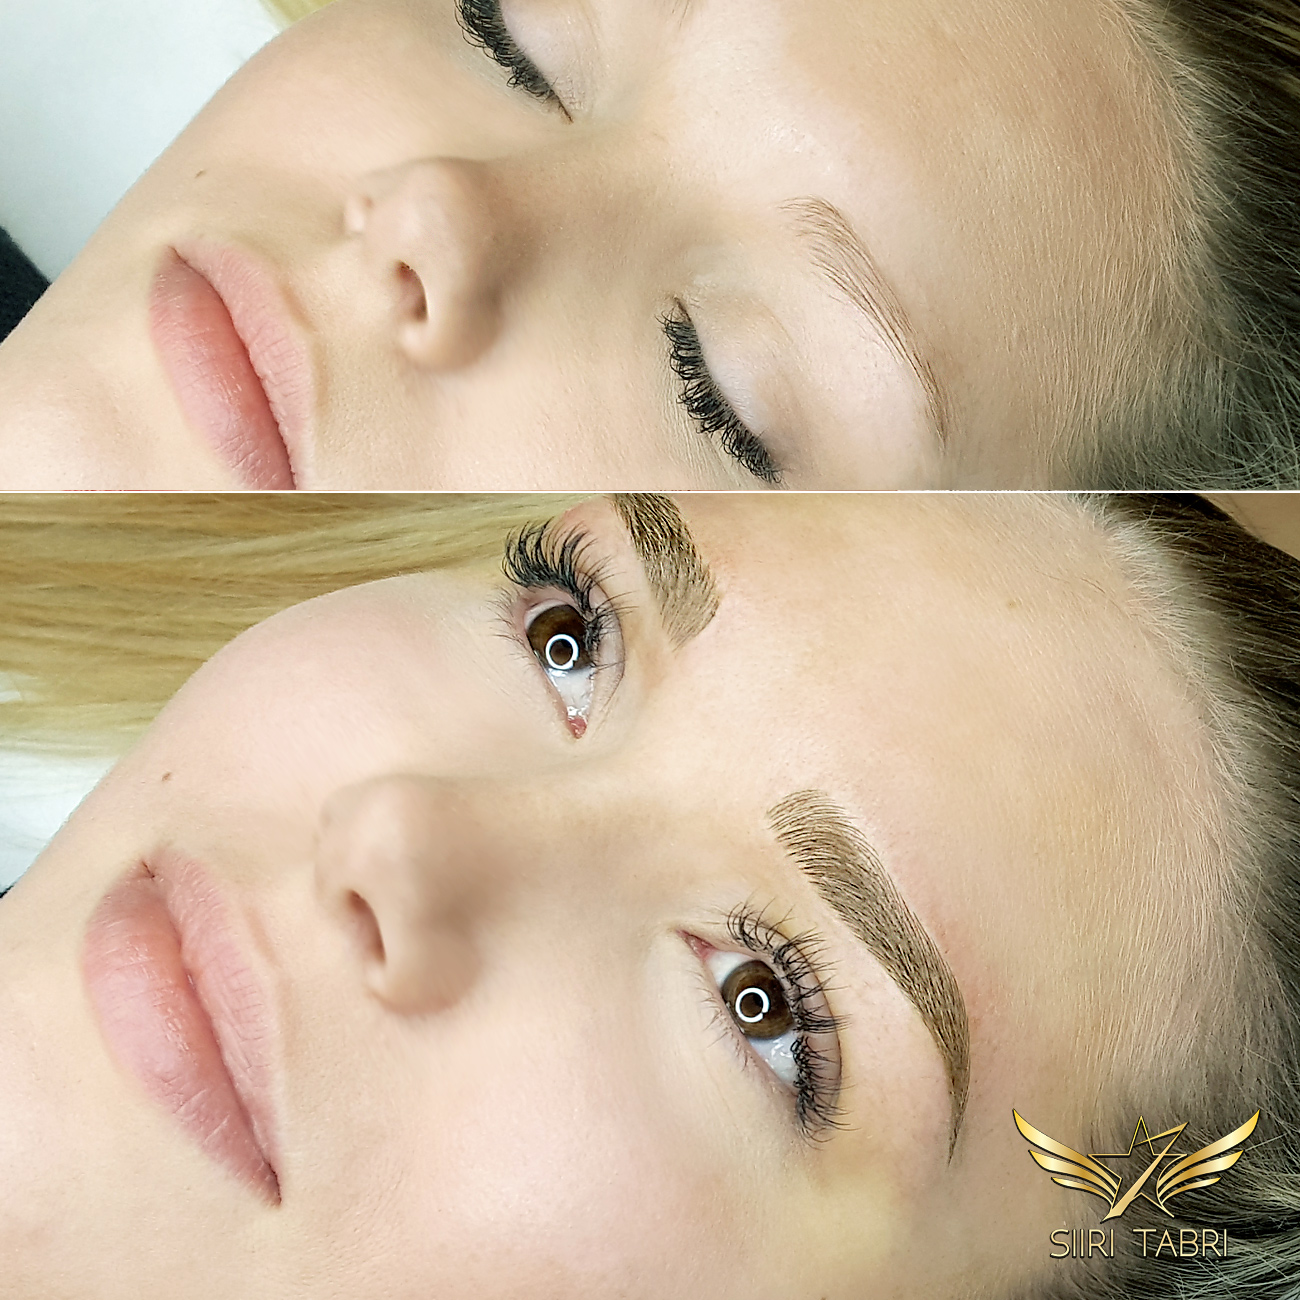 SharpBrows Light microblading. Incredible change with microblading made in the correct manner.